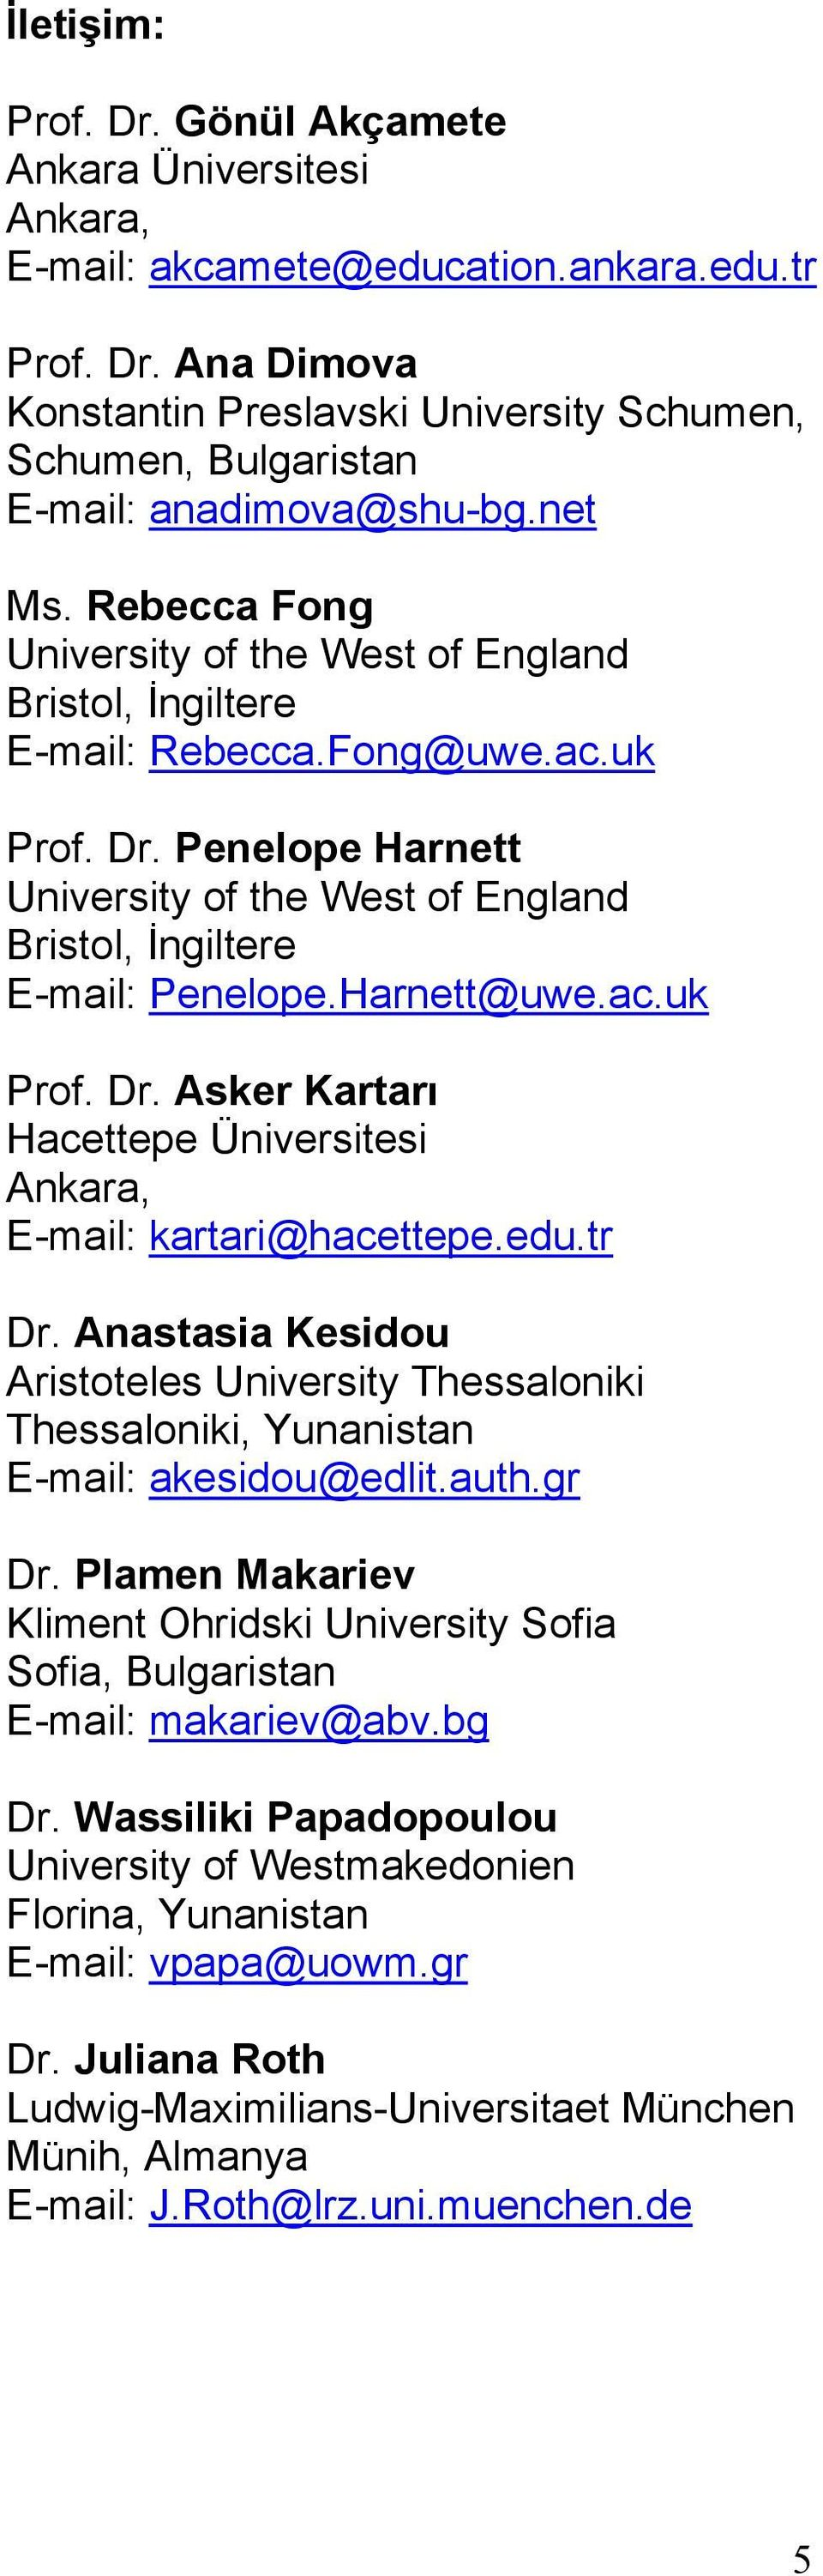 Penelope Harnett University of the West of England Bristol, Đngiltere E-mail: Penelope.Harnett@uwe.ac.uk Prof. Dr. Asker Kartarı Hacettepe Üniversitesi Ankara, E-mail: kartari@hacettepe.edu.tr Dr.